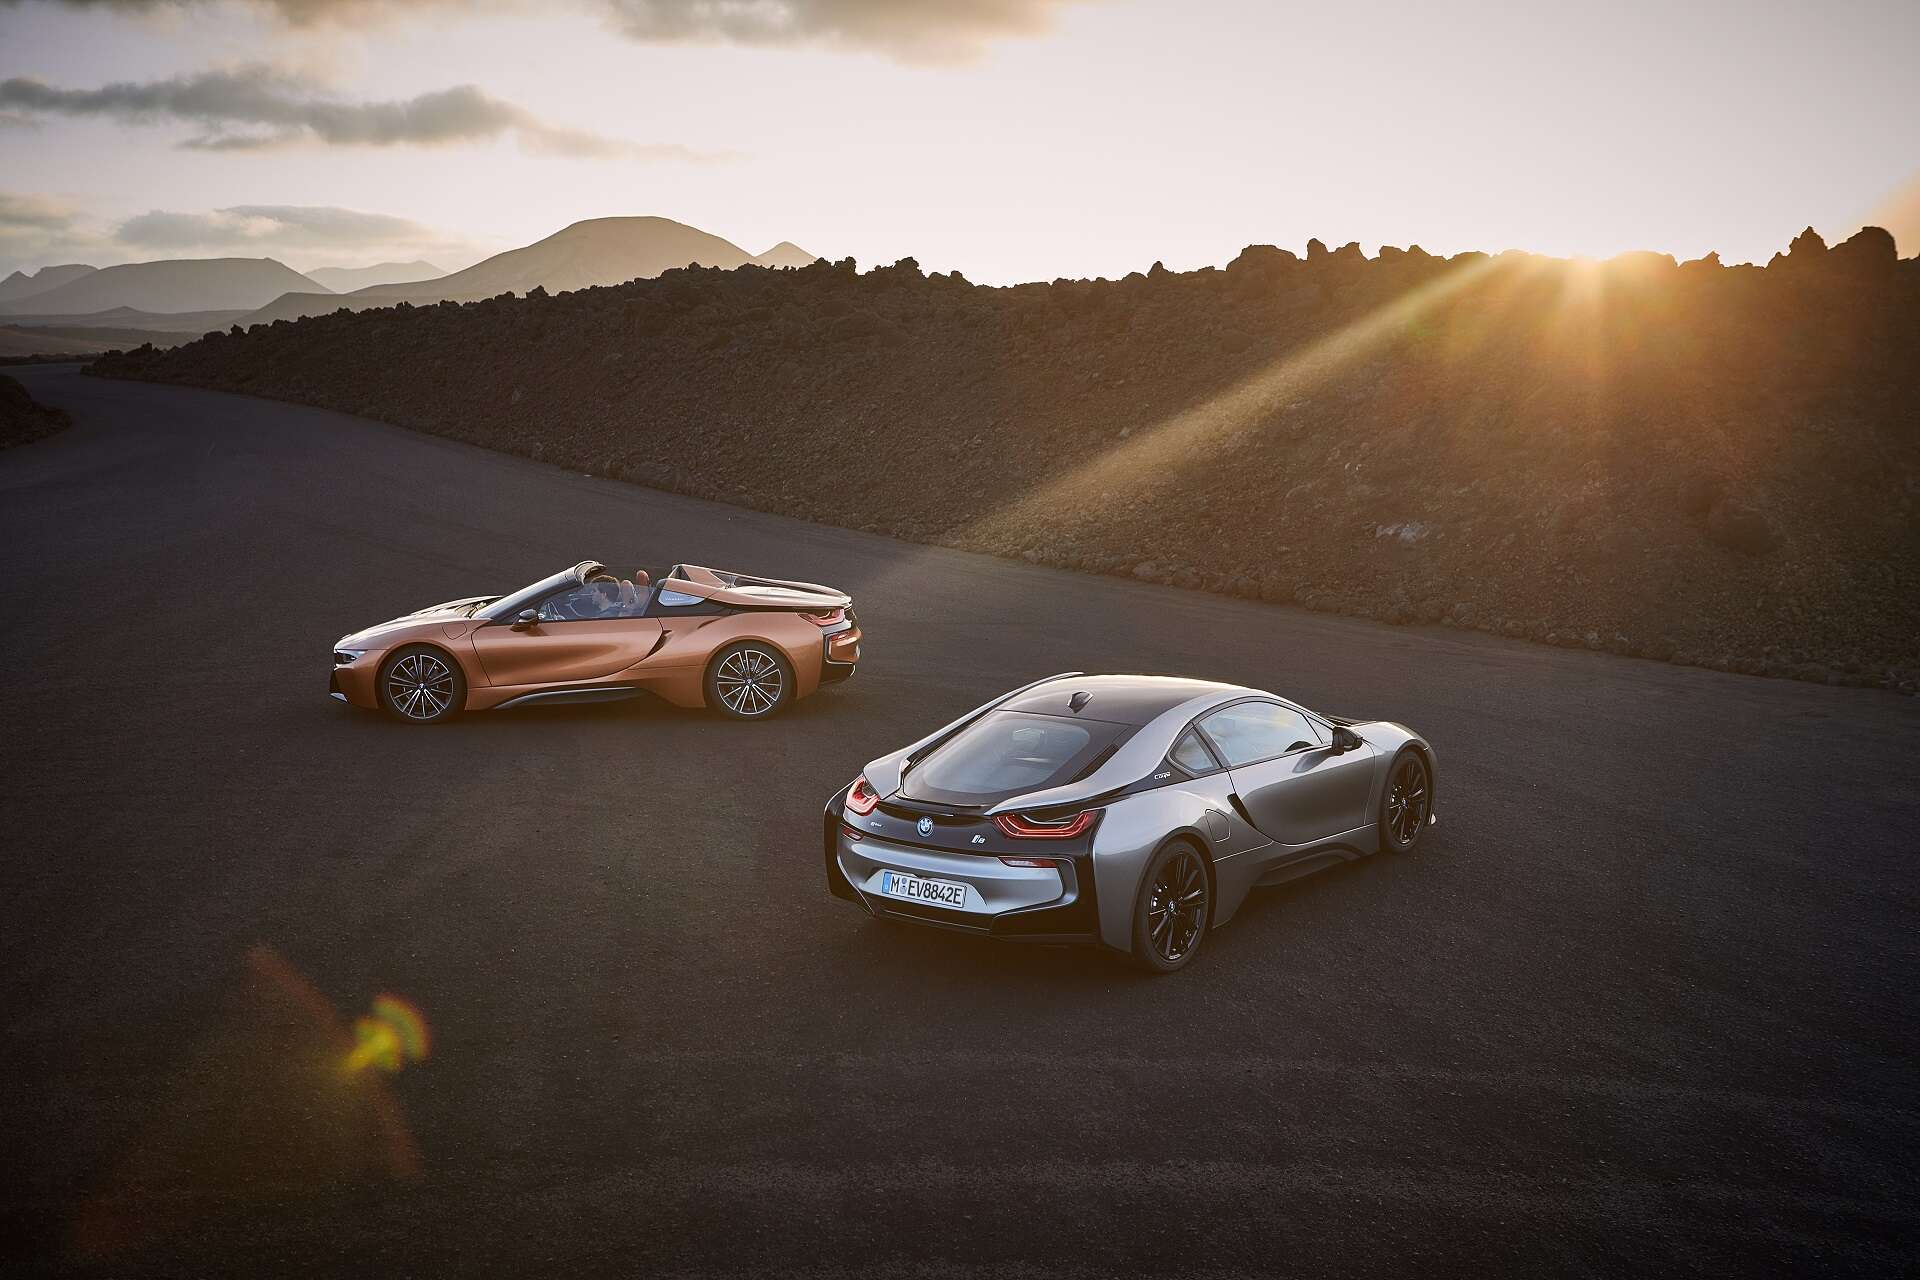 The Bmw I8 Roadster Brings You Even Closer To The Environment The